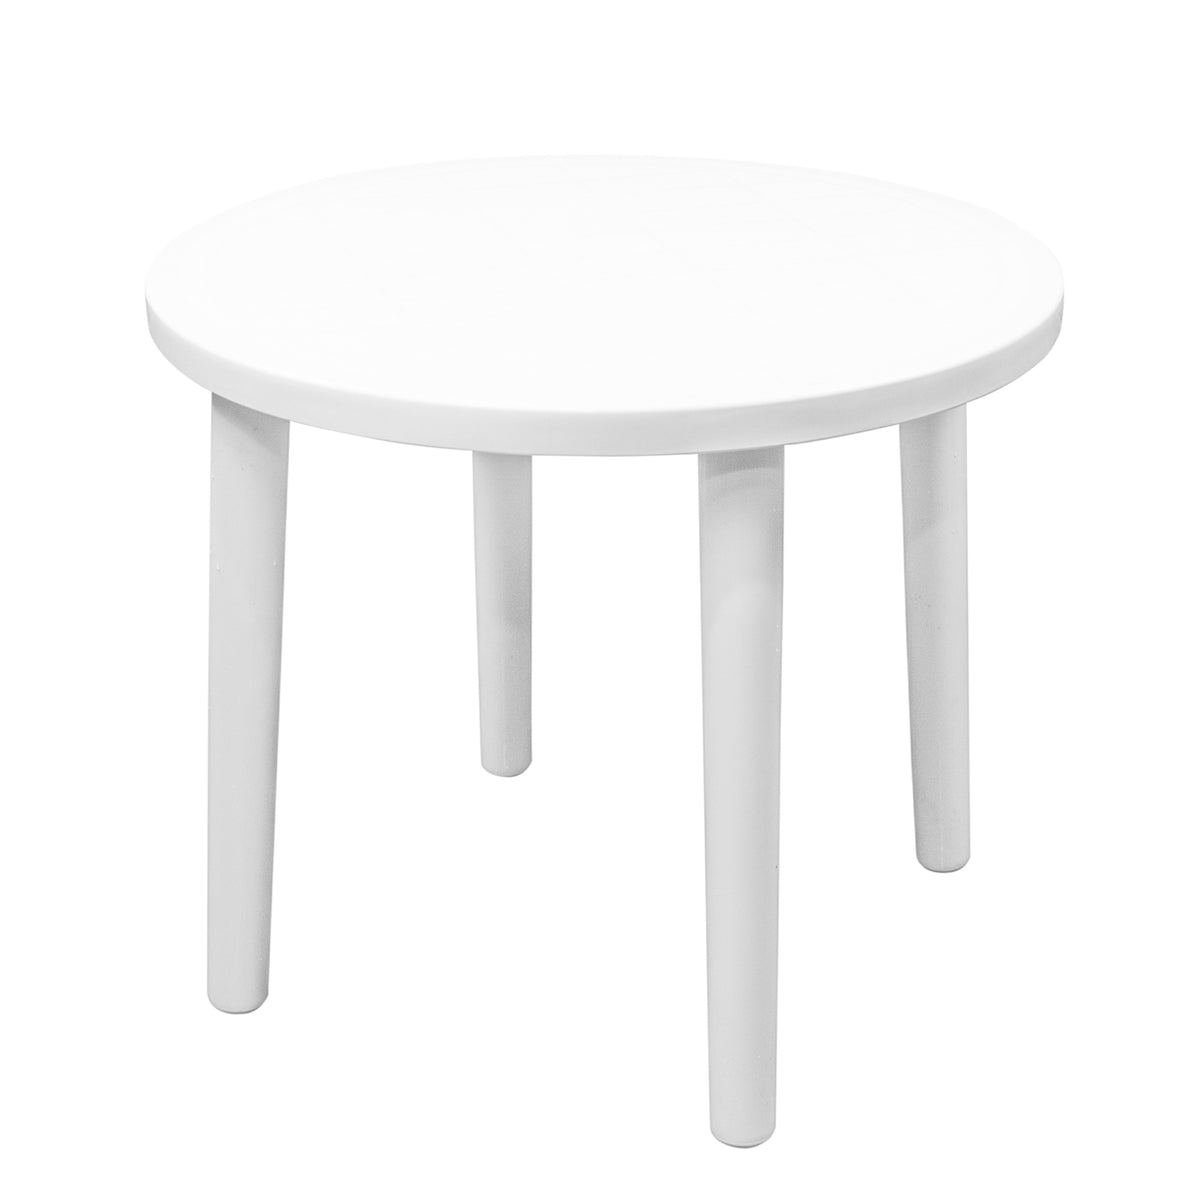 Resol Tossa Outdoor Round Garden Table - White Plastic - 86cm Diameter